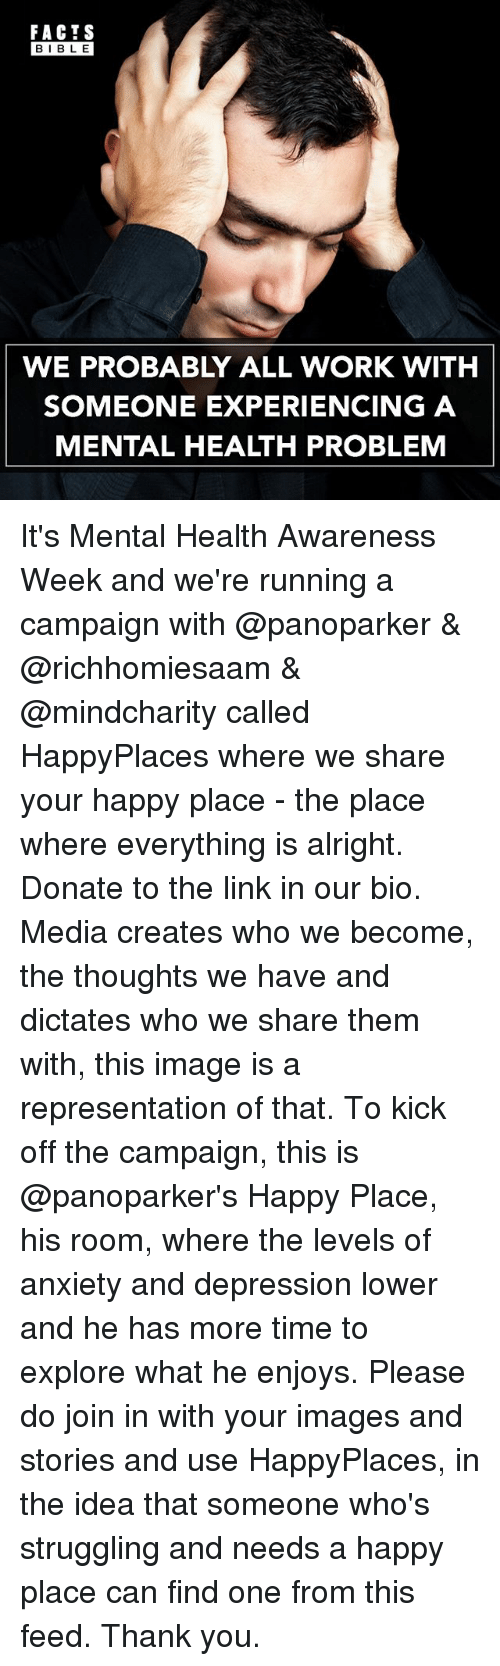 Facts, Memes, and Work: FACTS  BIBLE  WE PROBABLY ALL WORK WITH  SOMEONE EXPERIENCING A  MENTAL HEALTH PROBLEM It's Mental Health Awareness Week and we're running a campaign with @panoparker & @richhomiesaam & @mindcharity called HappyPlaces where we share your happy place - the place where everything is alright. Donate to the link in our bio. Media creates who we become, the thoughts we have and dictates who we share them with, this image is a representation of that. To kick off the campaign, this is @panoparker's Happy Place, his room, where the levels of anxiety and depression lower and he has more time to explore what he enjoys. Please do join in with your images and stories and use HappyPlaces, in the idea that someone who's struggling and needs a happy place can find one from this feed. Thank you.